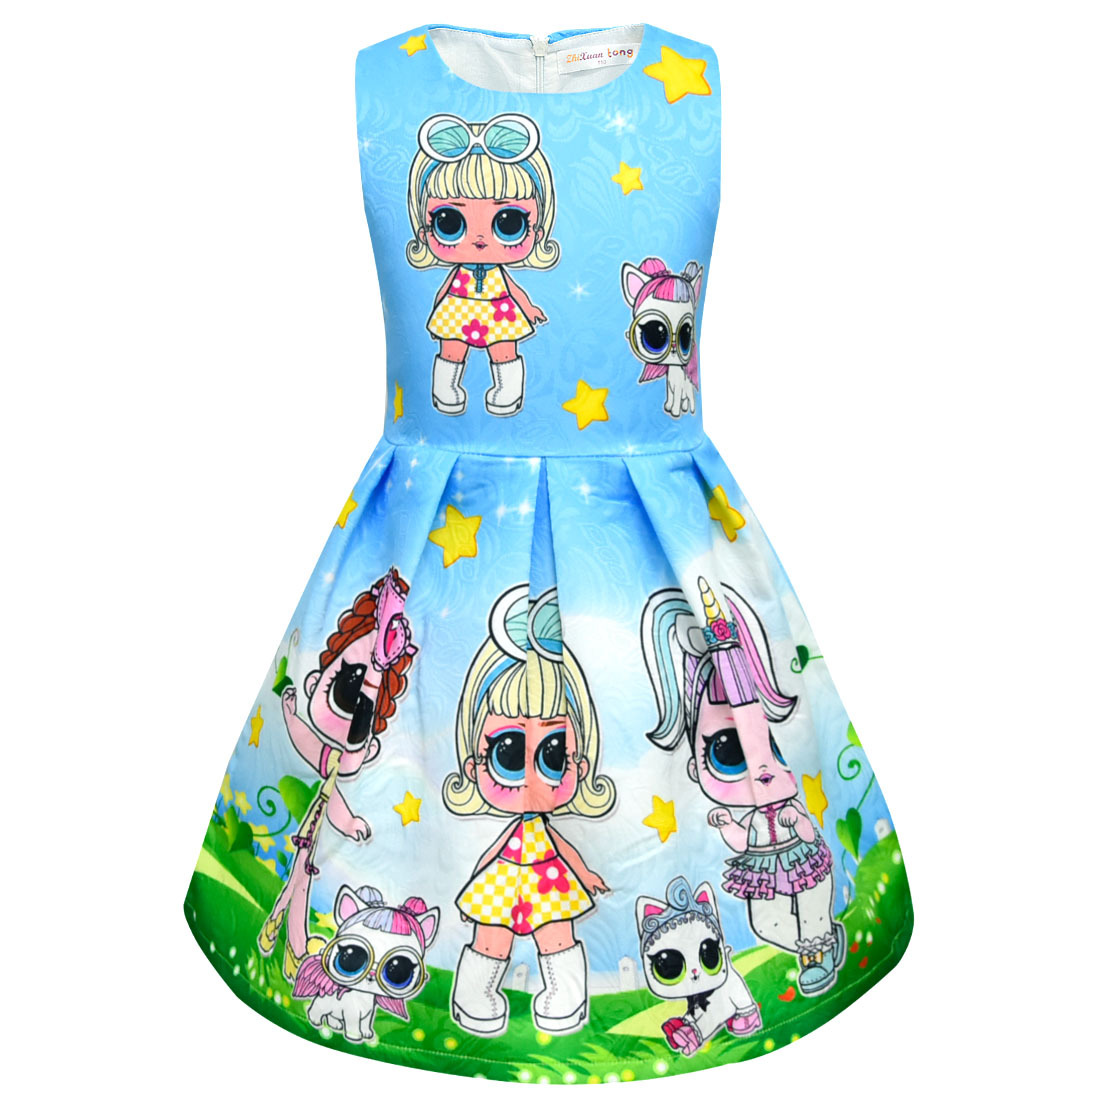 532b79e0d56 LOL baby girl princess birthday party lotus leaf vest children s dress  high-end surprise doll tutu girl summer dress wedding